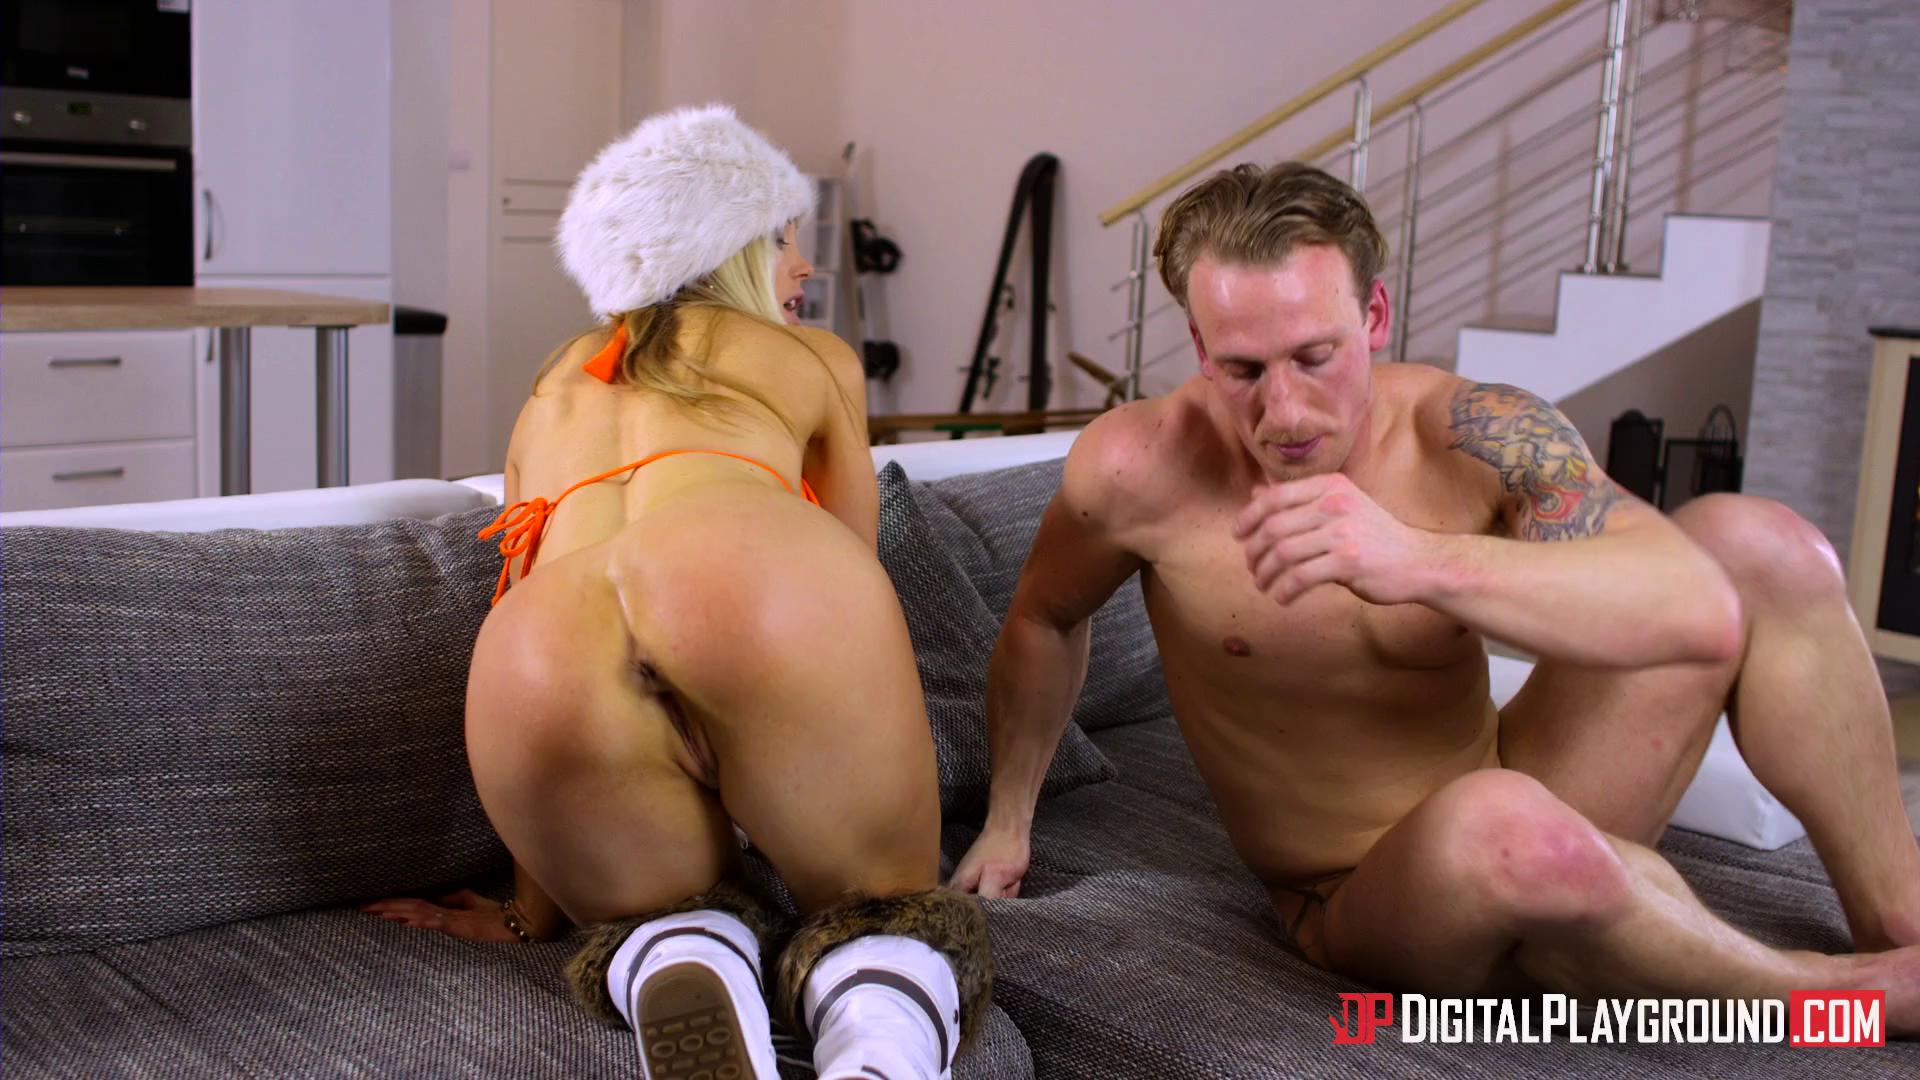 DigitalPlayground – Rebecca Moore Ski Bums Episode 2